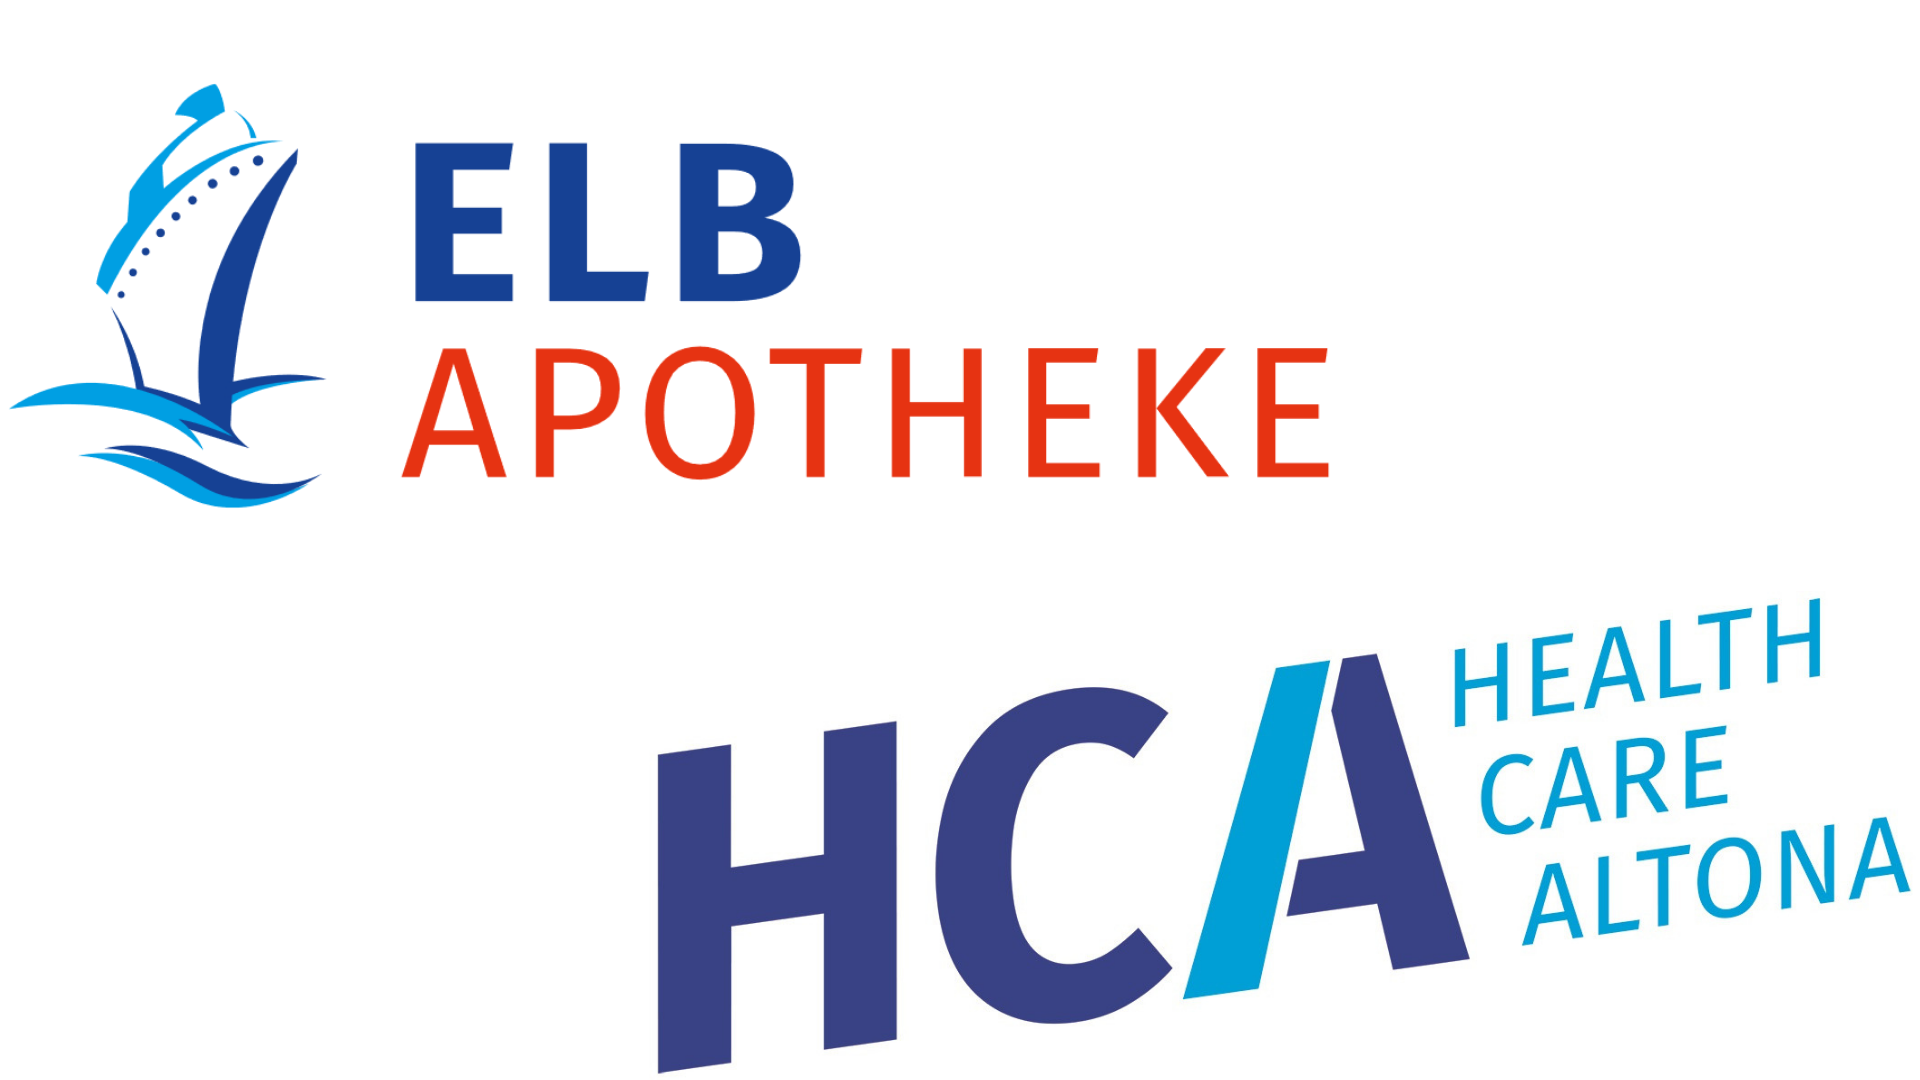 HCA – Health Care Altona Pharma GmbH